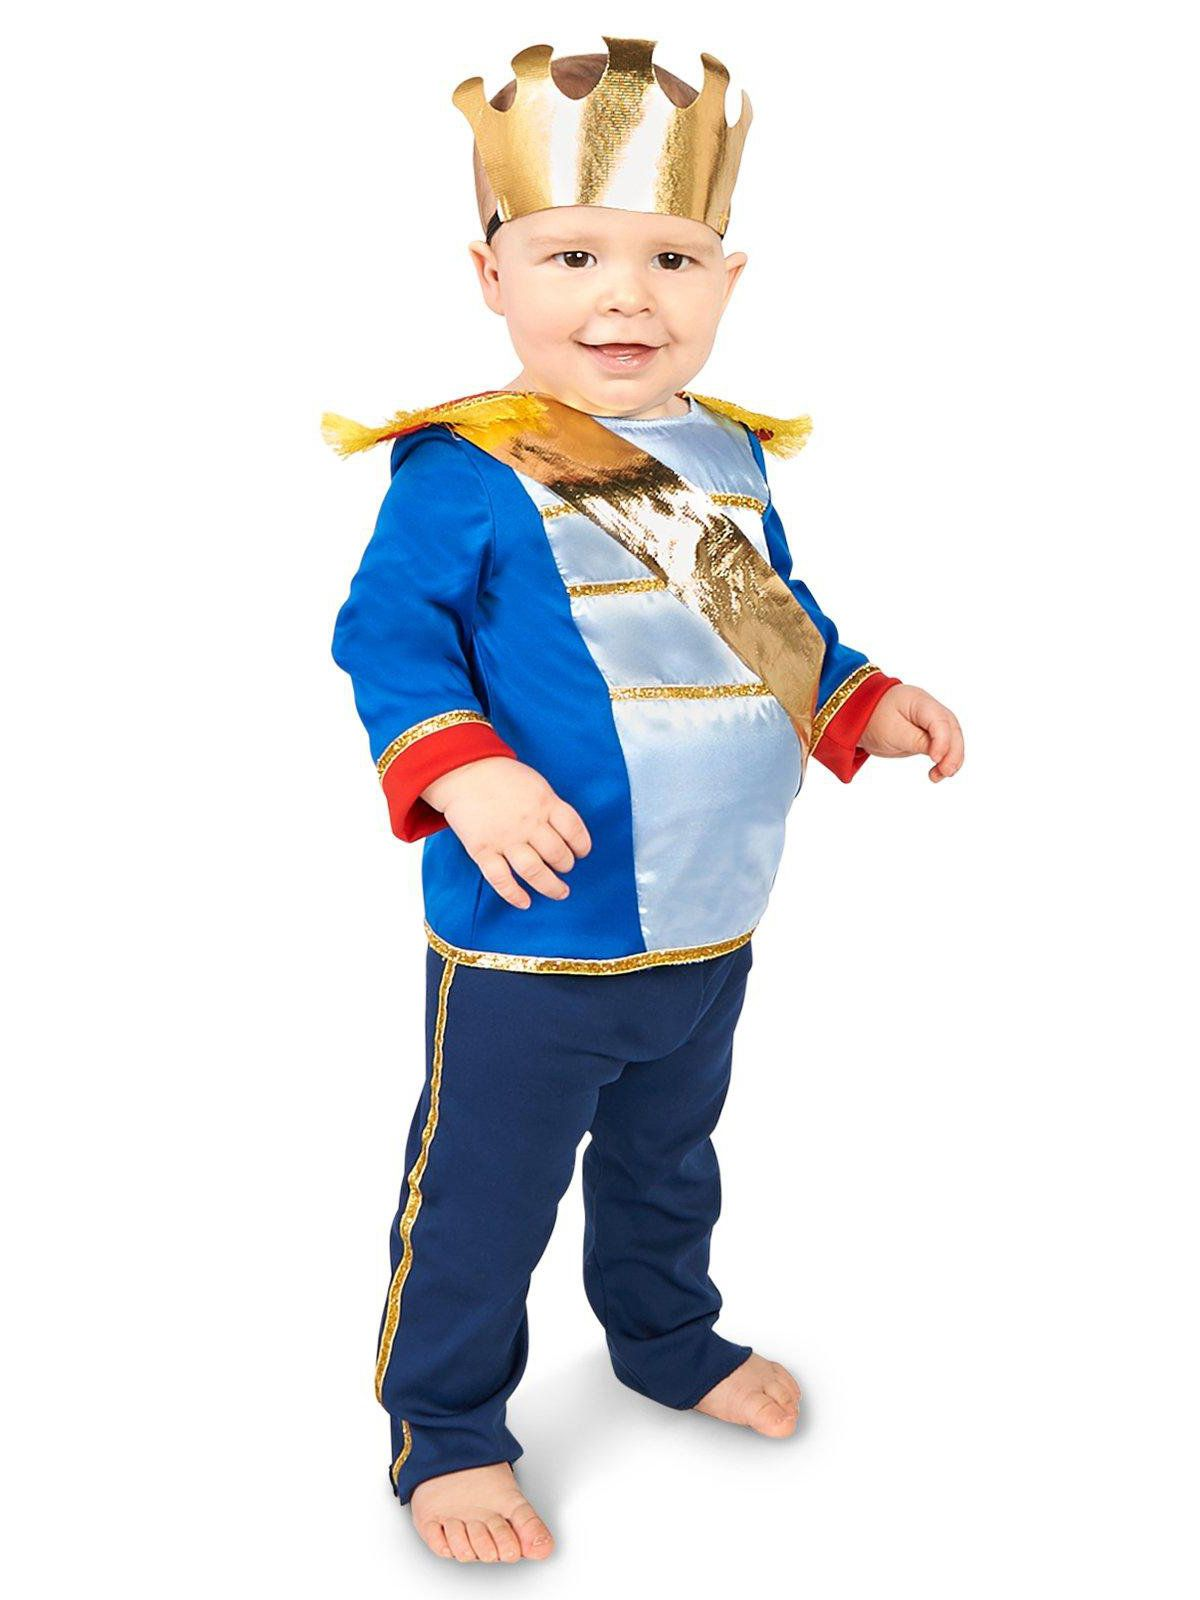 Baby Most Charming Prince Costume For Babies  sc 1 st  Wholesale Halloween Costumes & Baby Most Charming Prince Costume For Babies | Wholesale Halloween ...